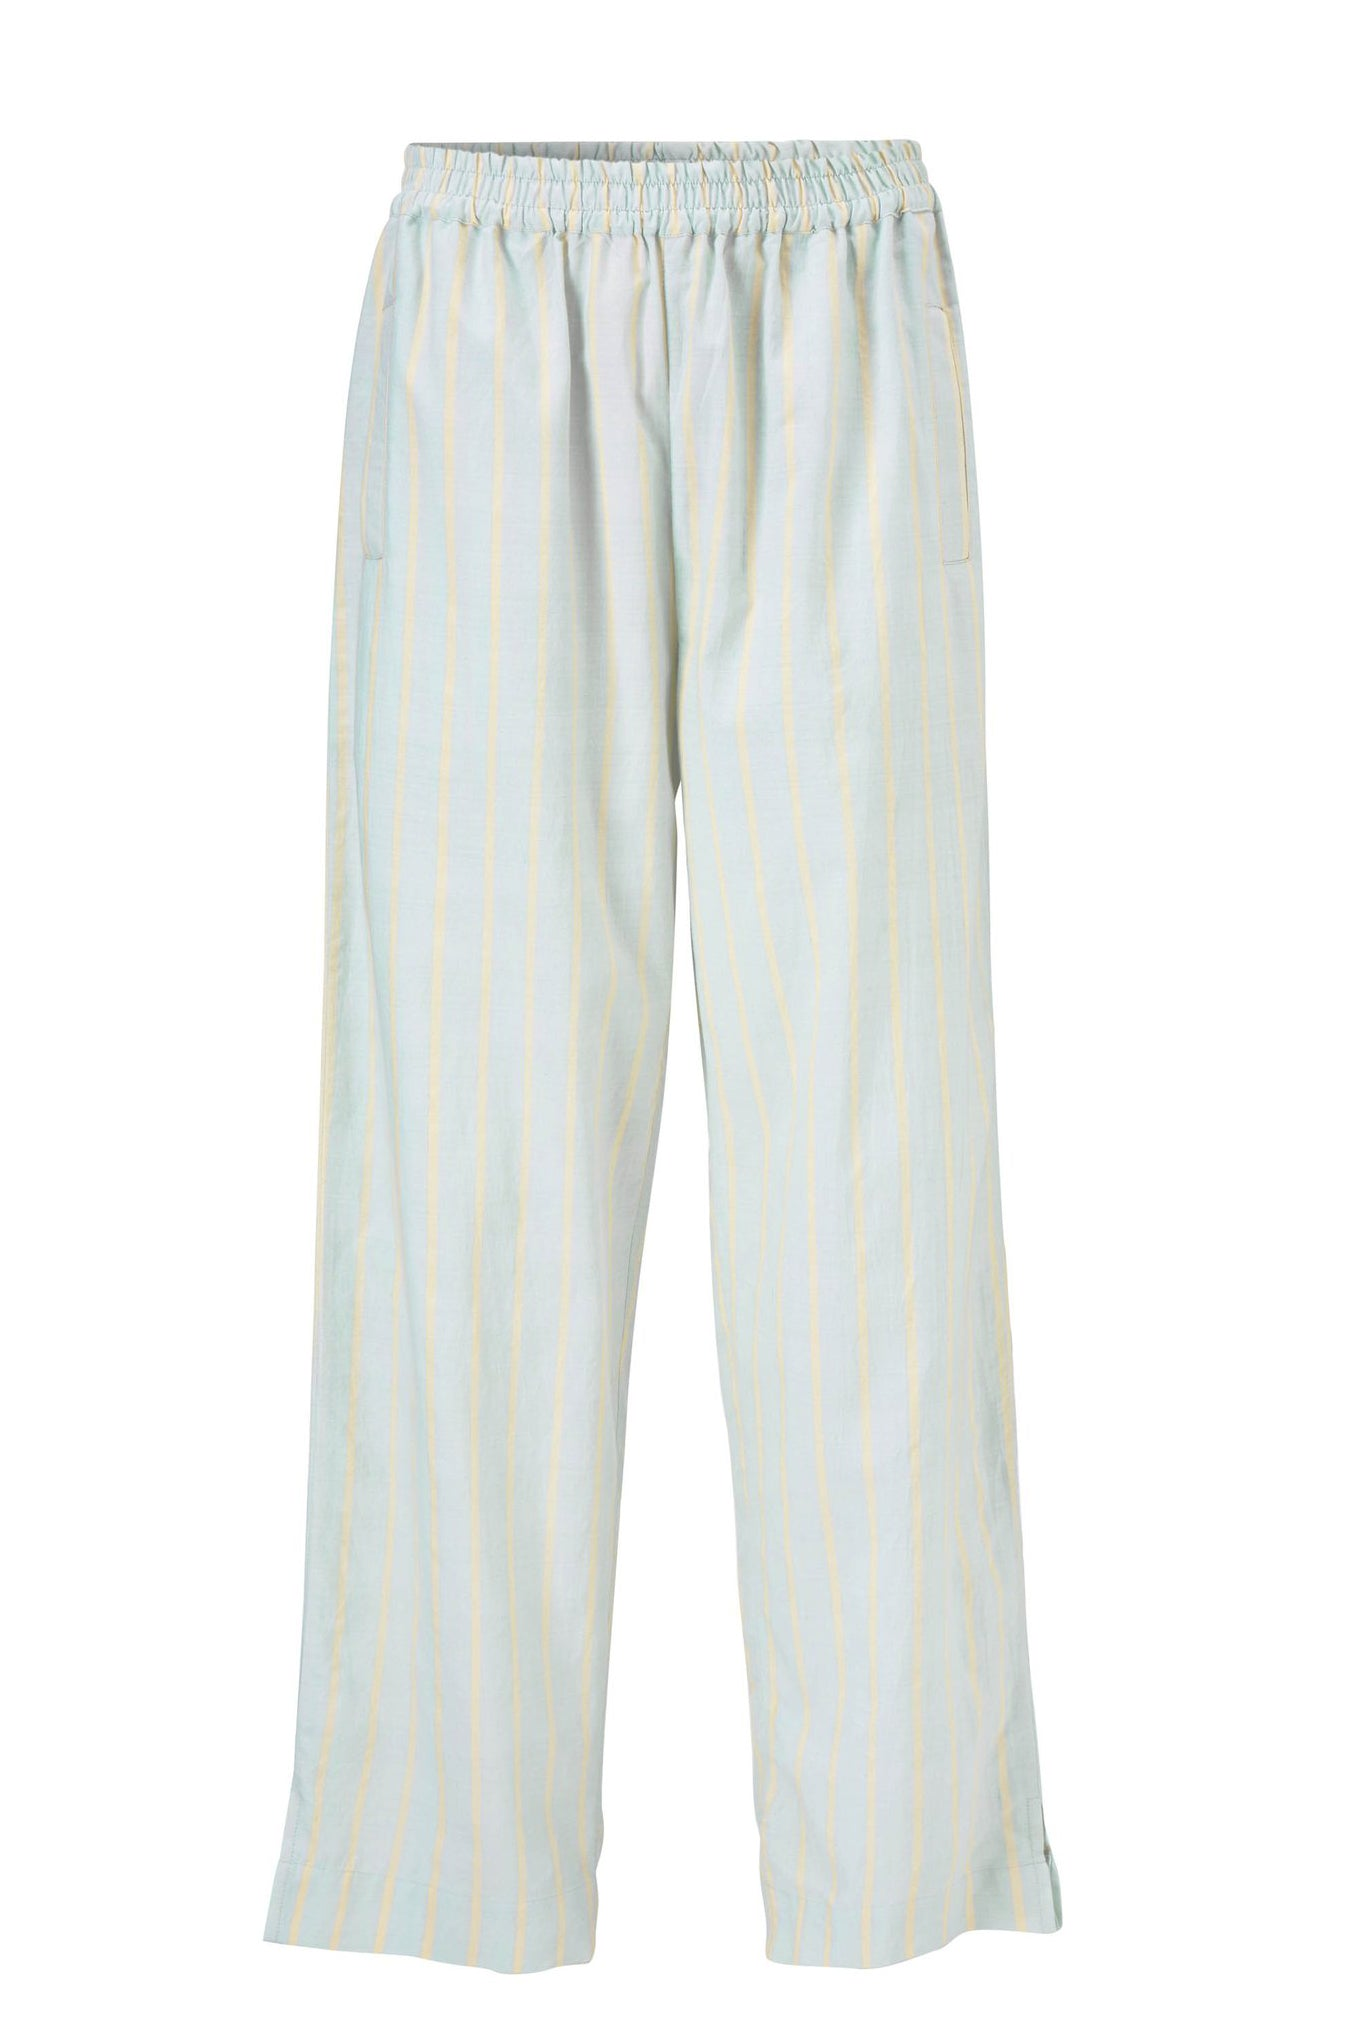 ELI PANTS - BLUE/YELLOW STRIPE - SILK/COTTON